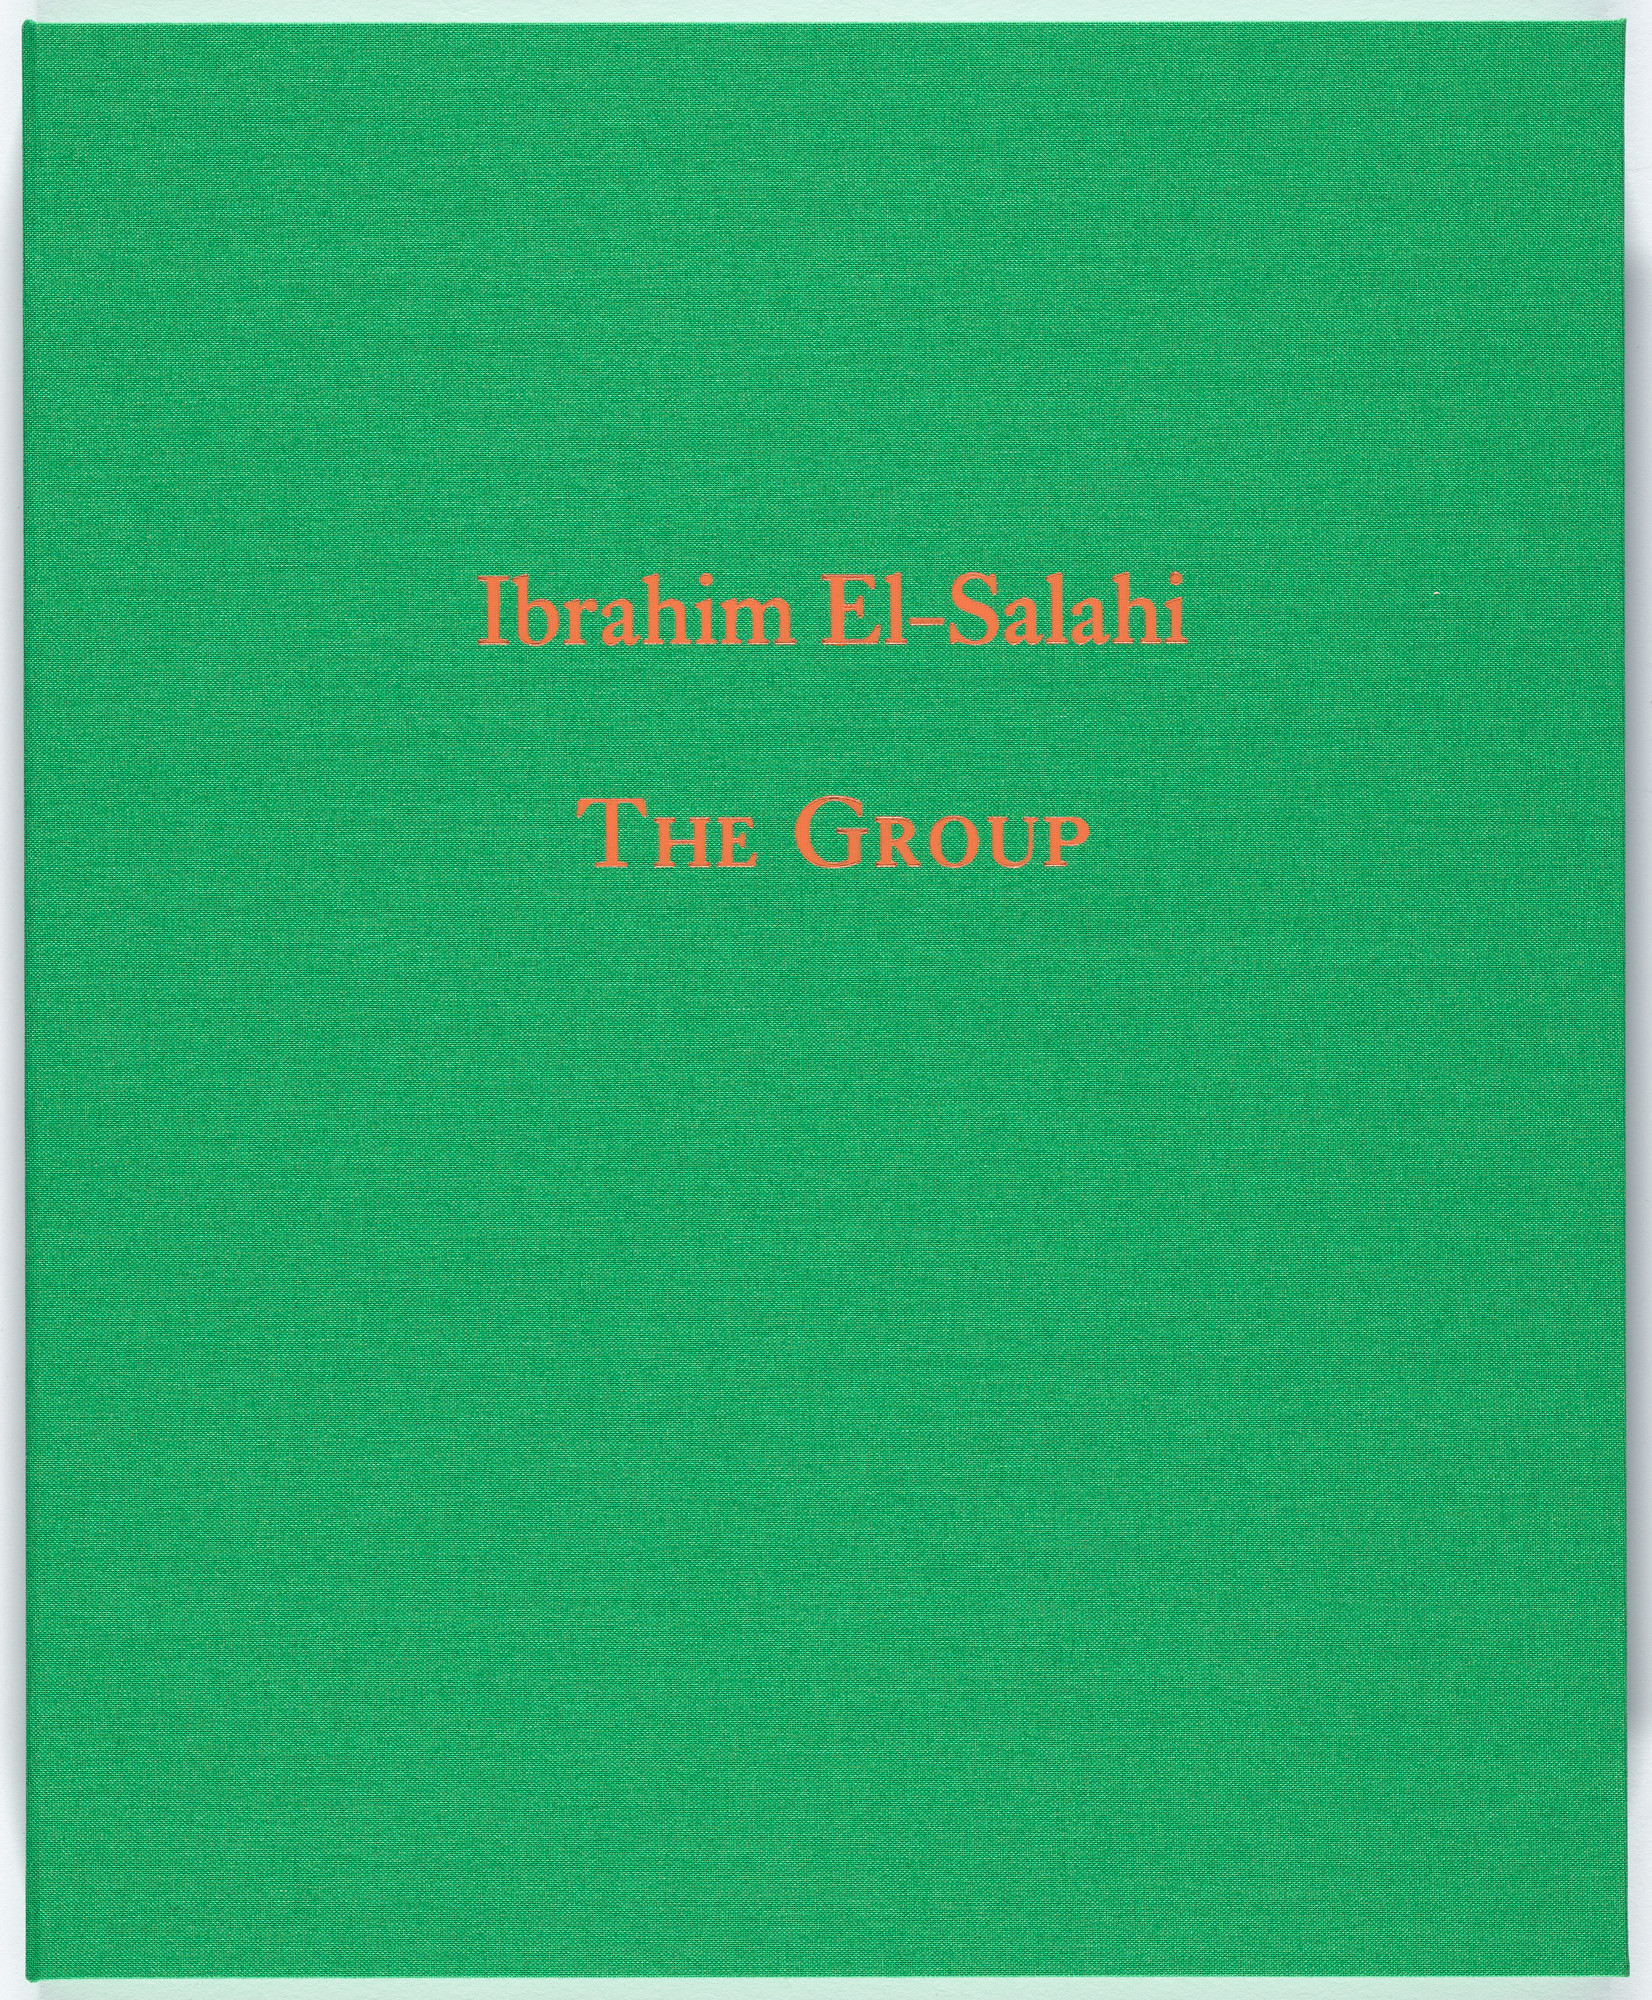 Ibrahim El-Salahi. The Group. 2016